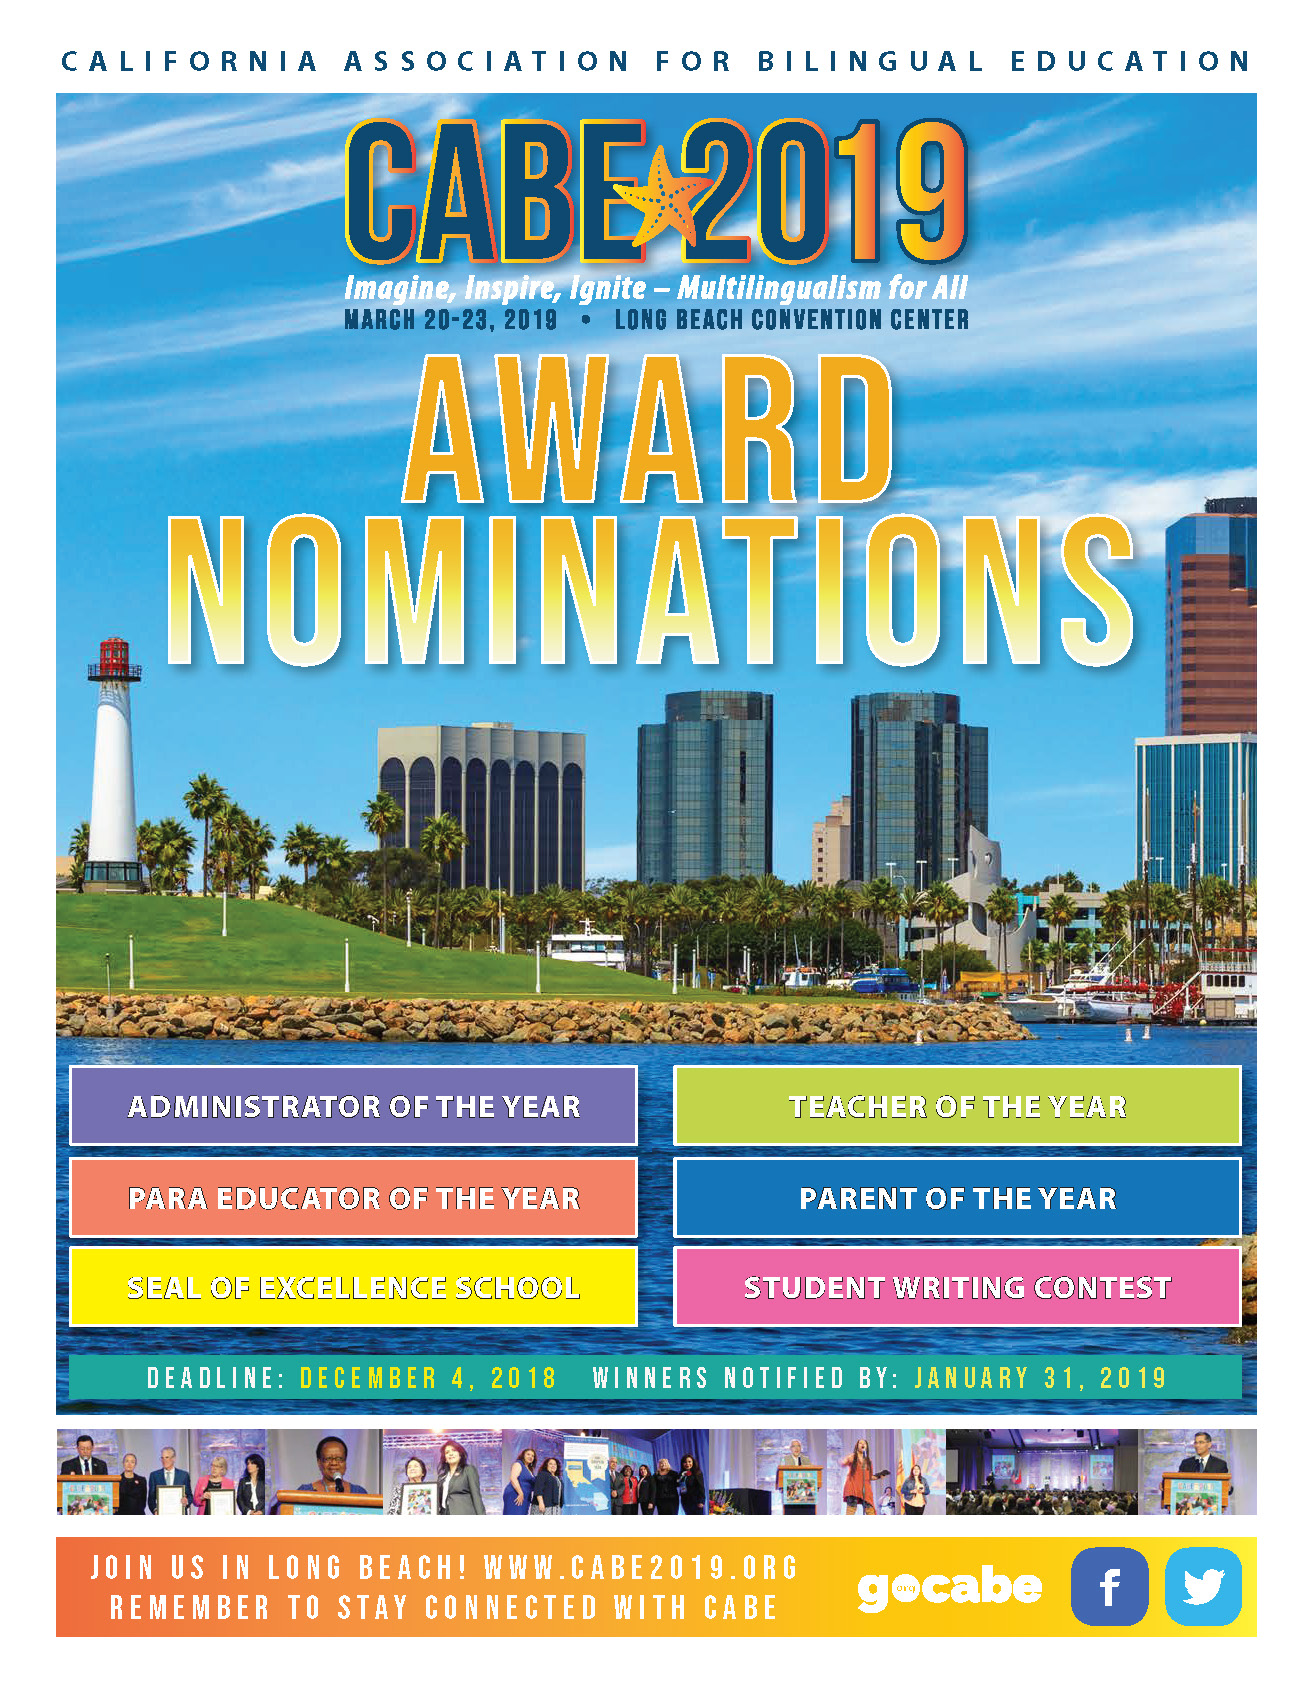 Download The Awards nomination Brochure for CABE 2019